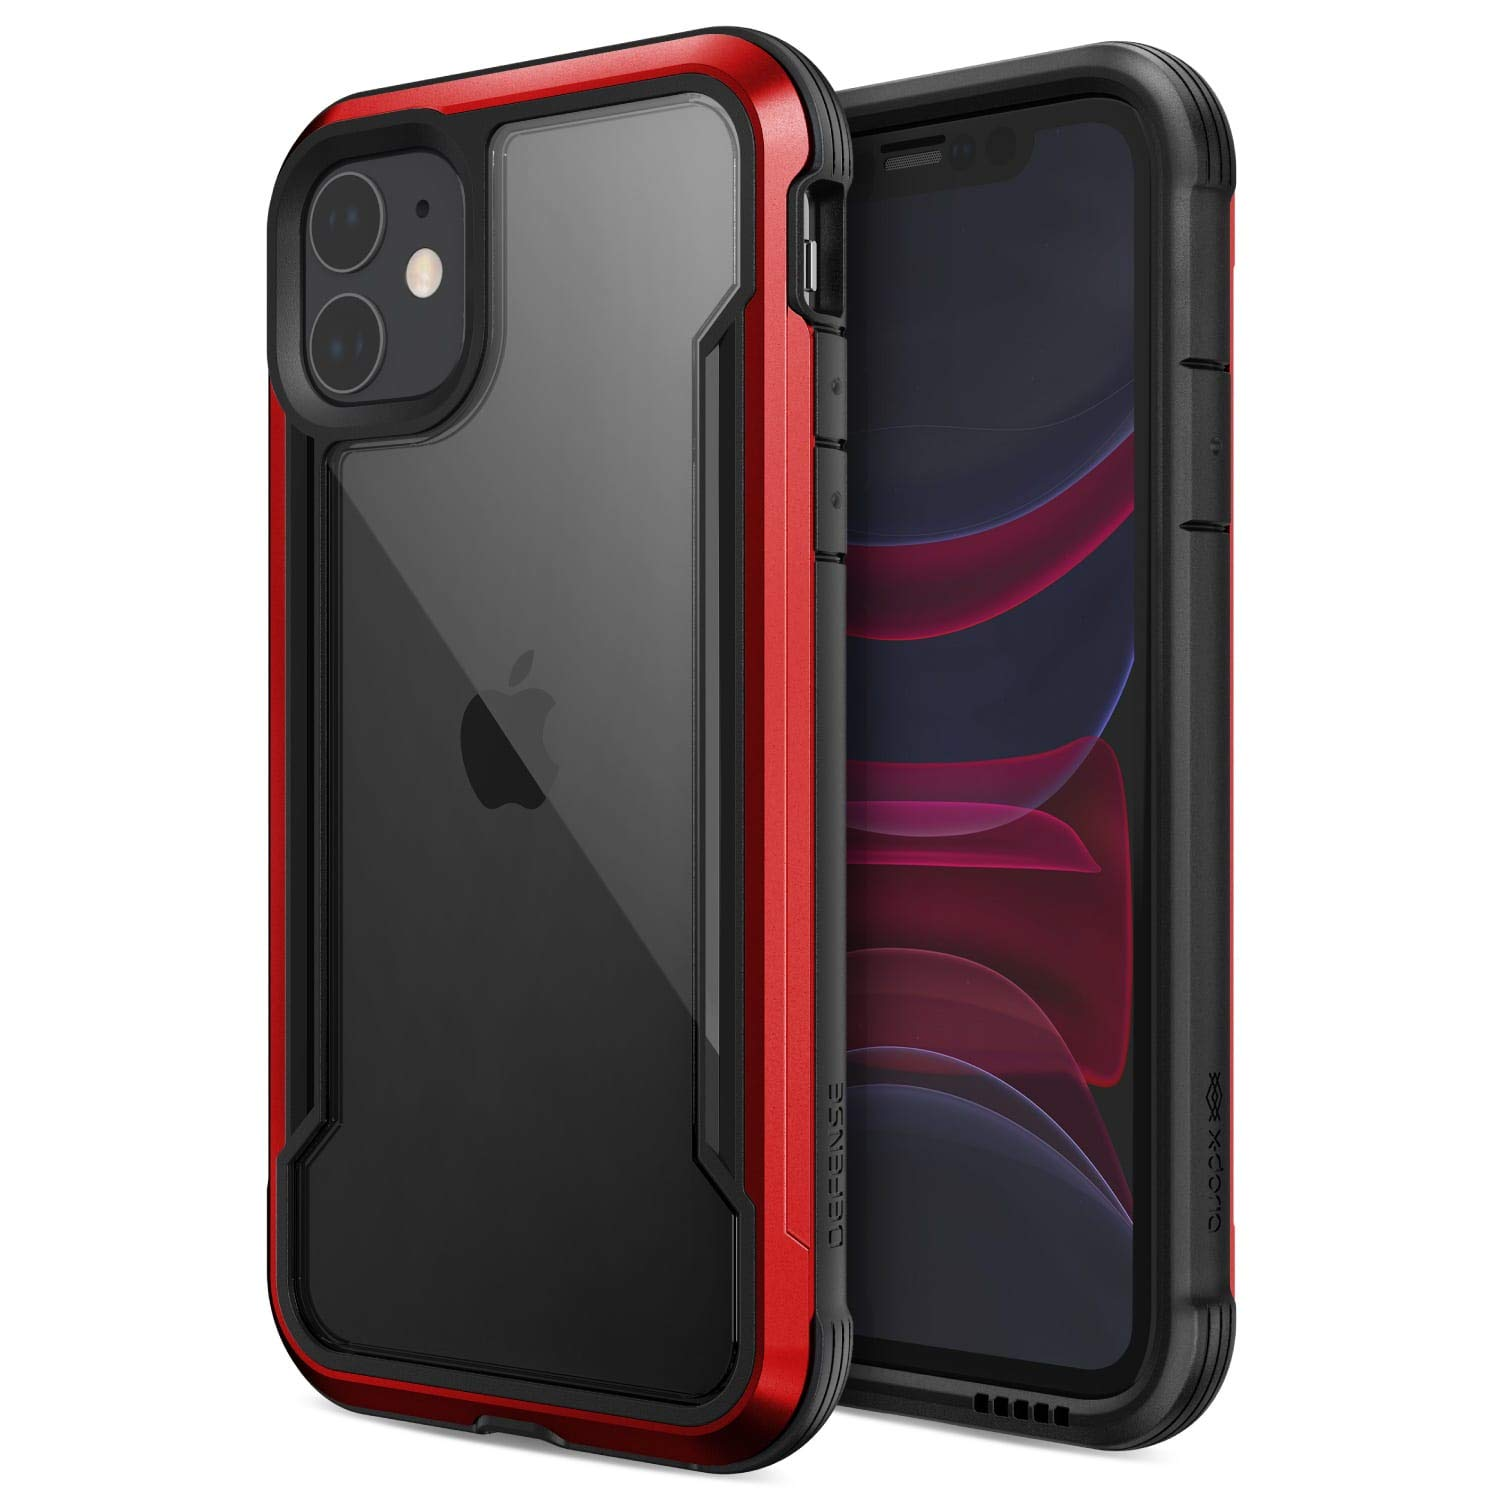 Defense Shield Series, iPhone 11 Case - Military Grade Drop Tested, Anodized Aluminum, TPU, and Polycarbonate Protective Case for Apple iPhone 11, (Red) by X-Doria